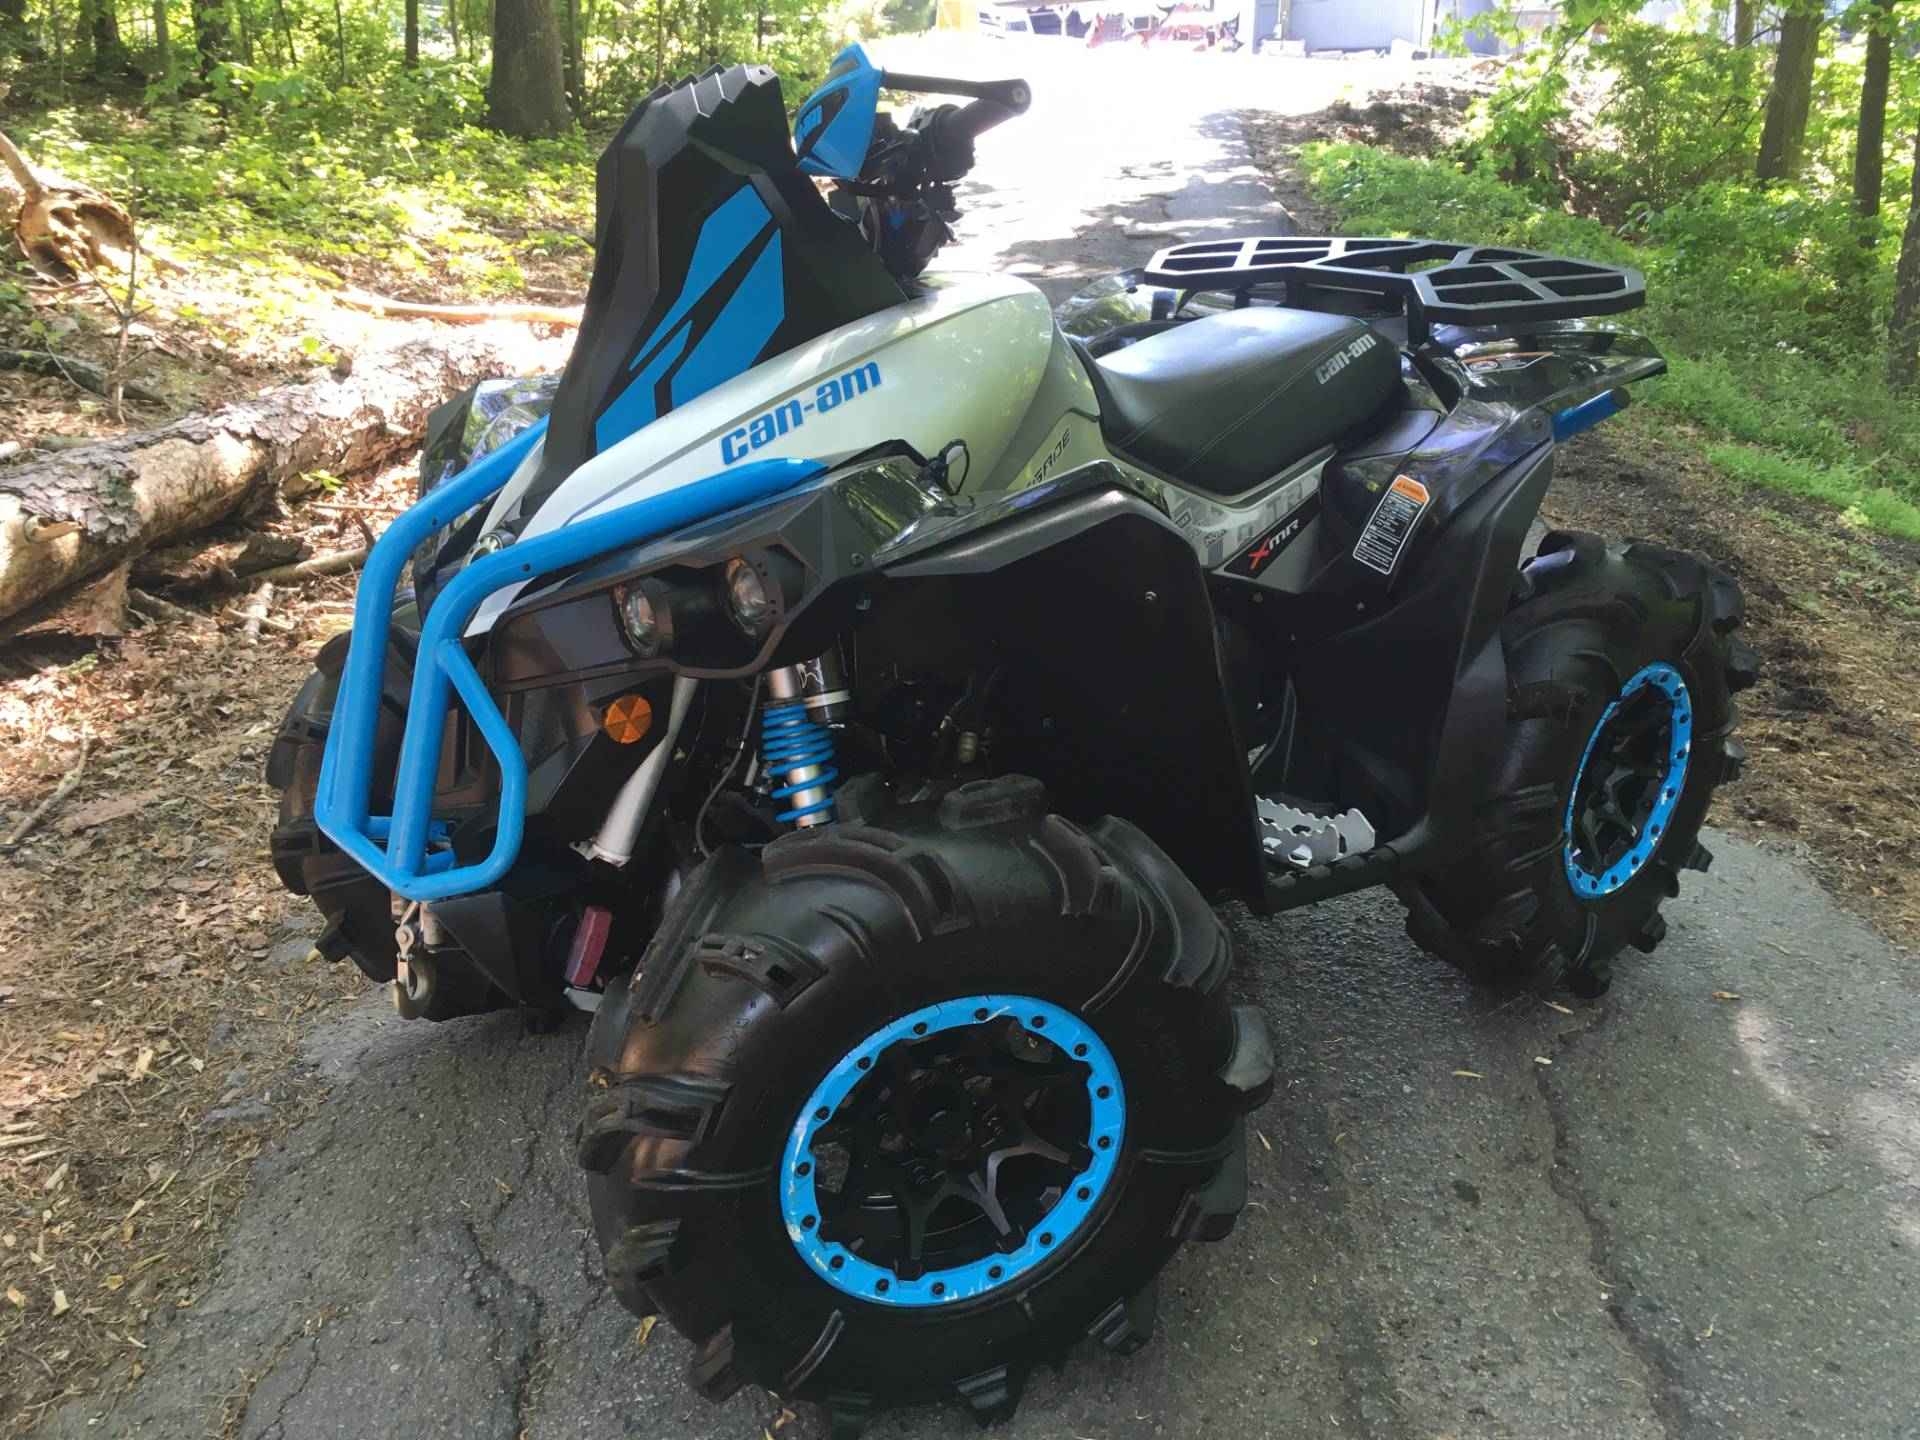 2017 Can-Am Renegade X mr 1000R in Woodstock, Georgia - Photo 1